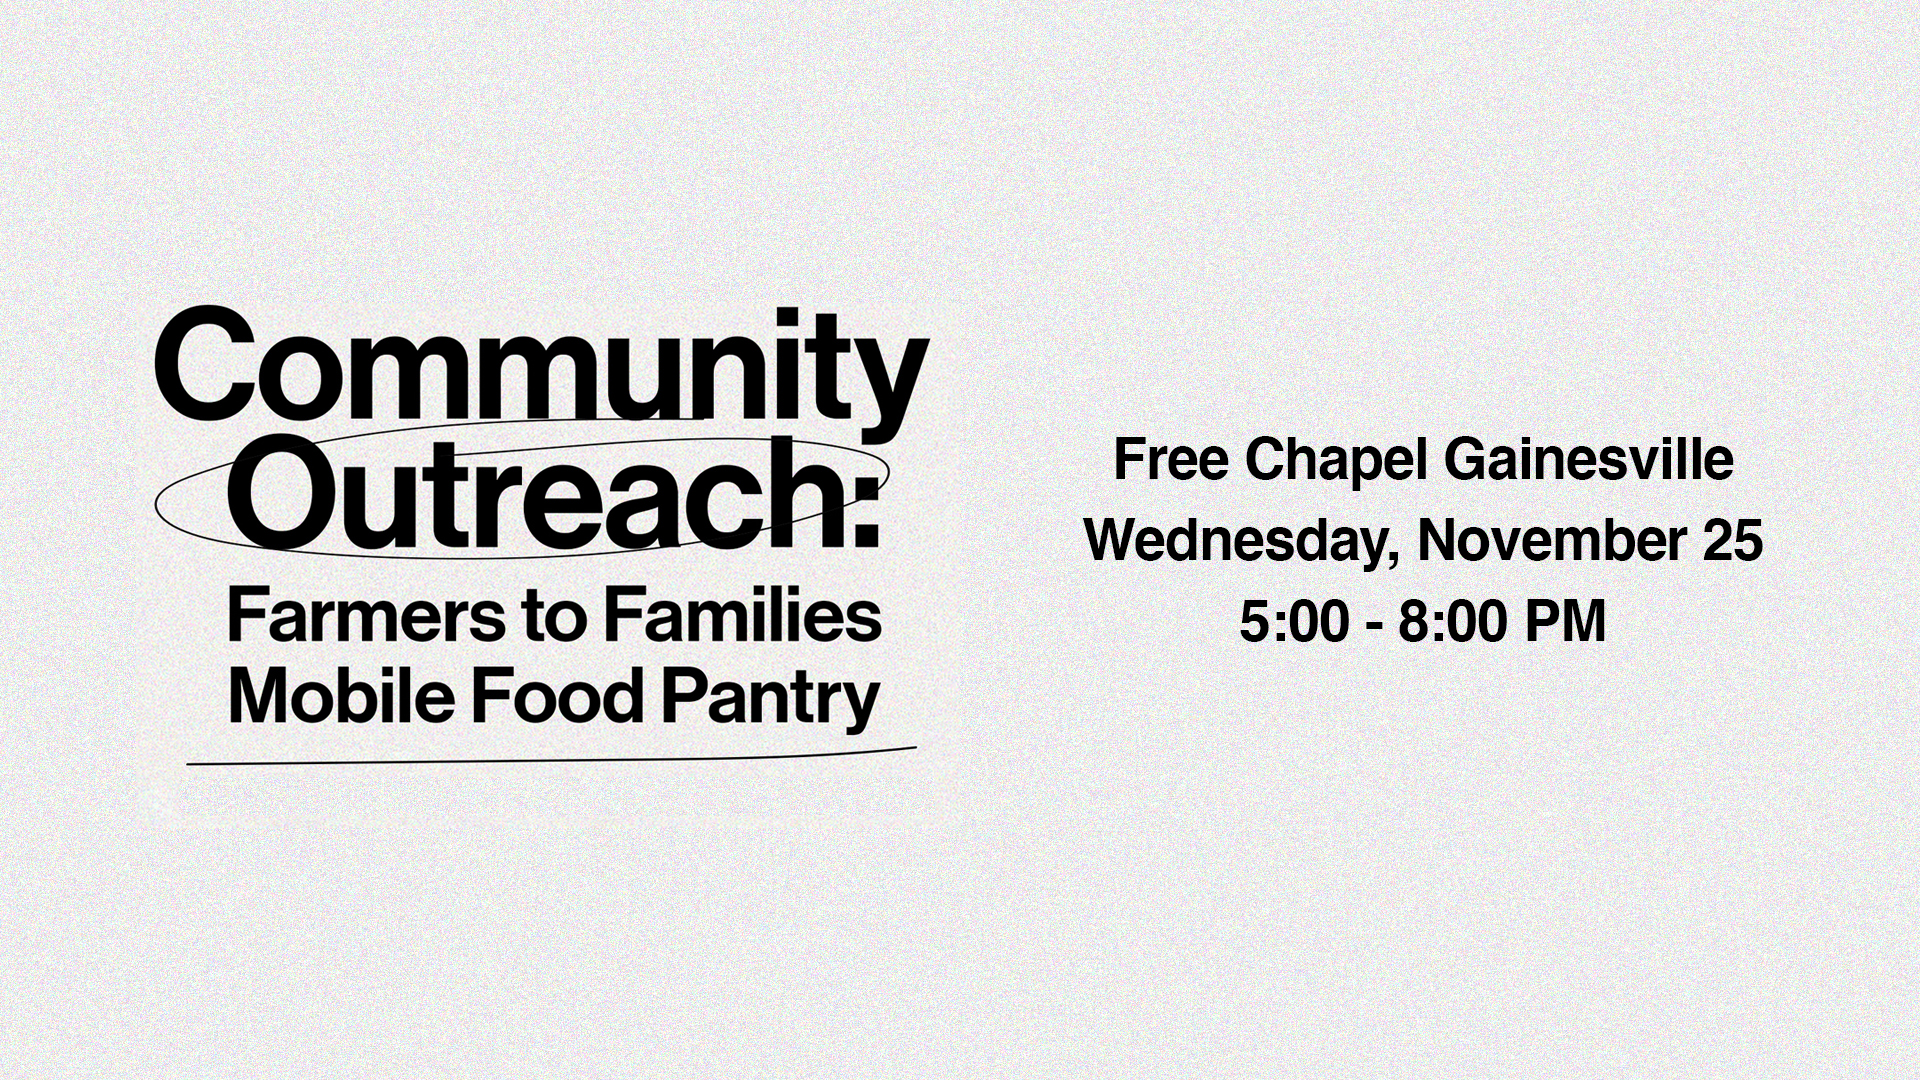 Community Outreach at the Gainesville campus